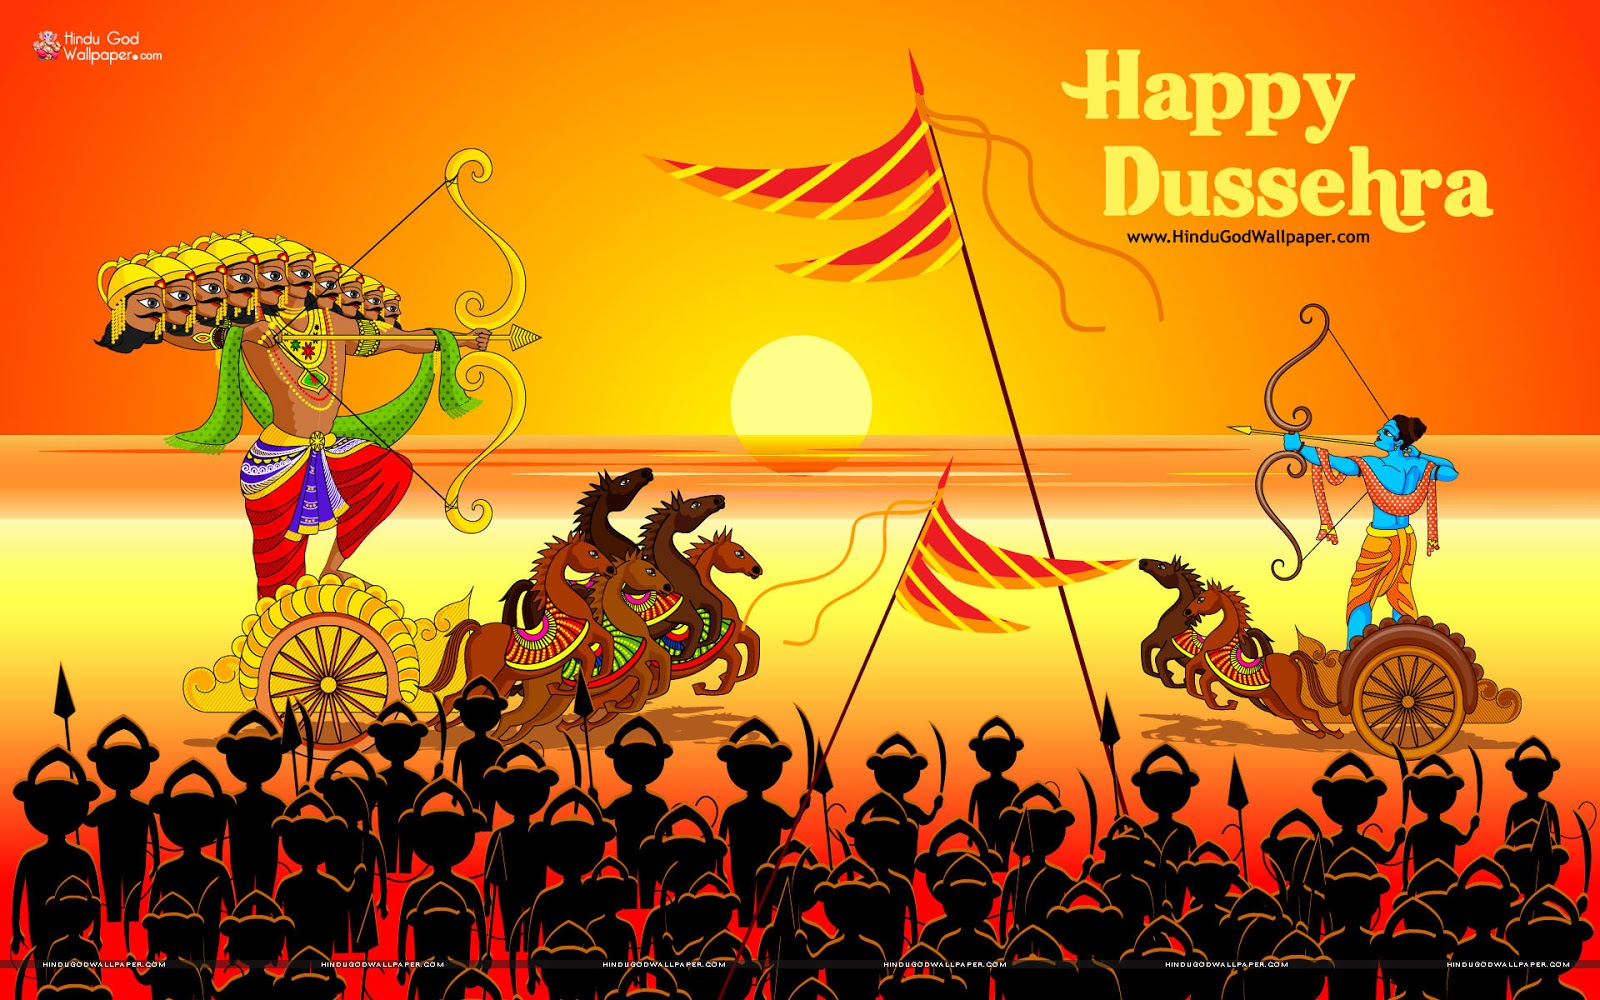 Happy dussehra 2016 special wishes in hindienglish and marathi 15 ram and ravan dussehra wallpaper as well as including with special dussehra wishes also on this page you will find happy dussehra 2016 smswishes and m4hsunfo